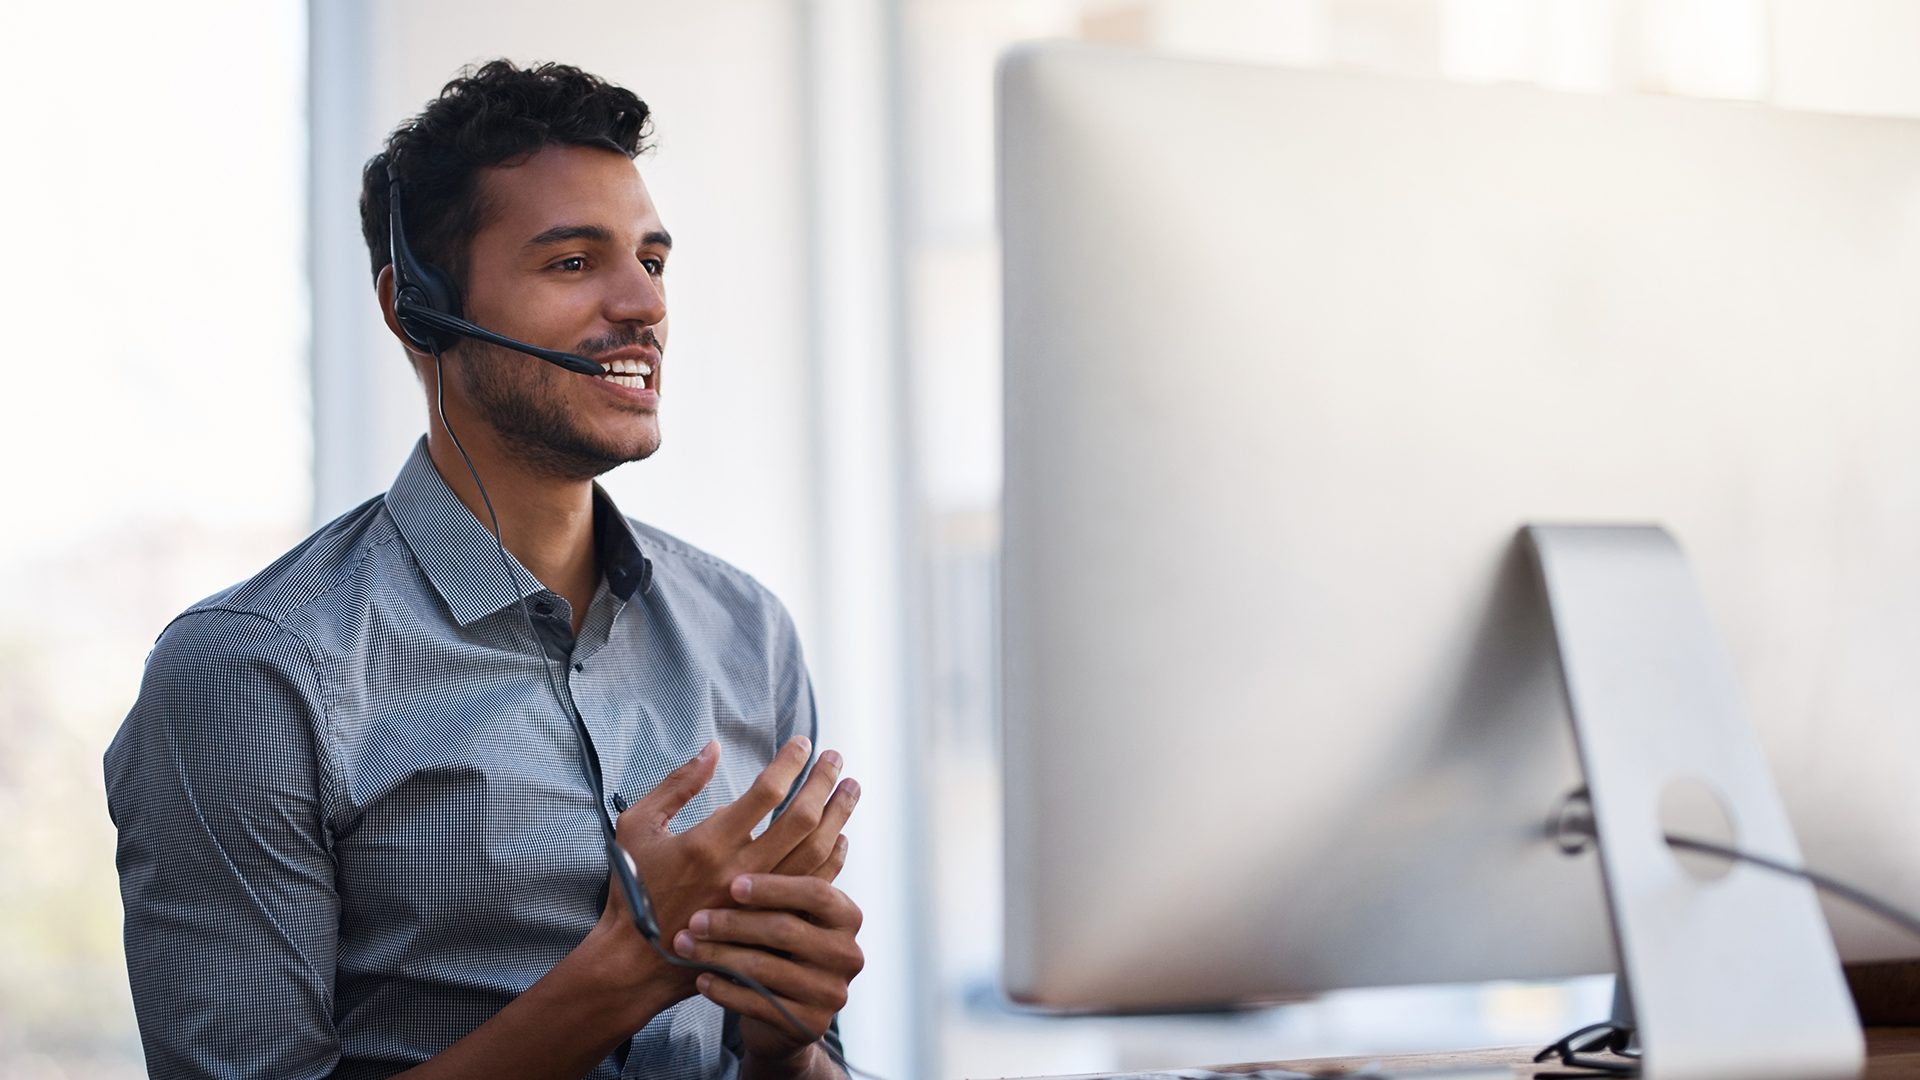 5 Steps to Deliver Stand-Out Customer Care